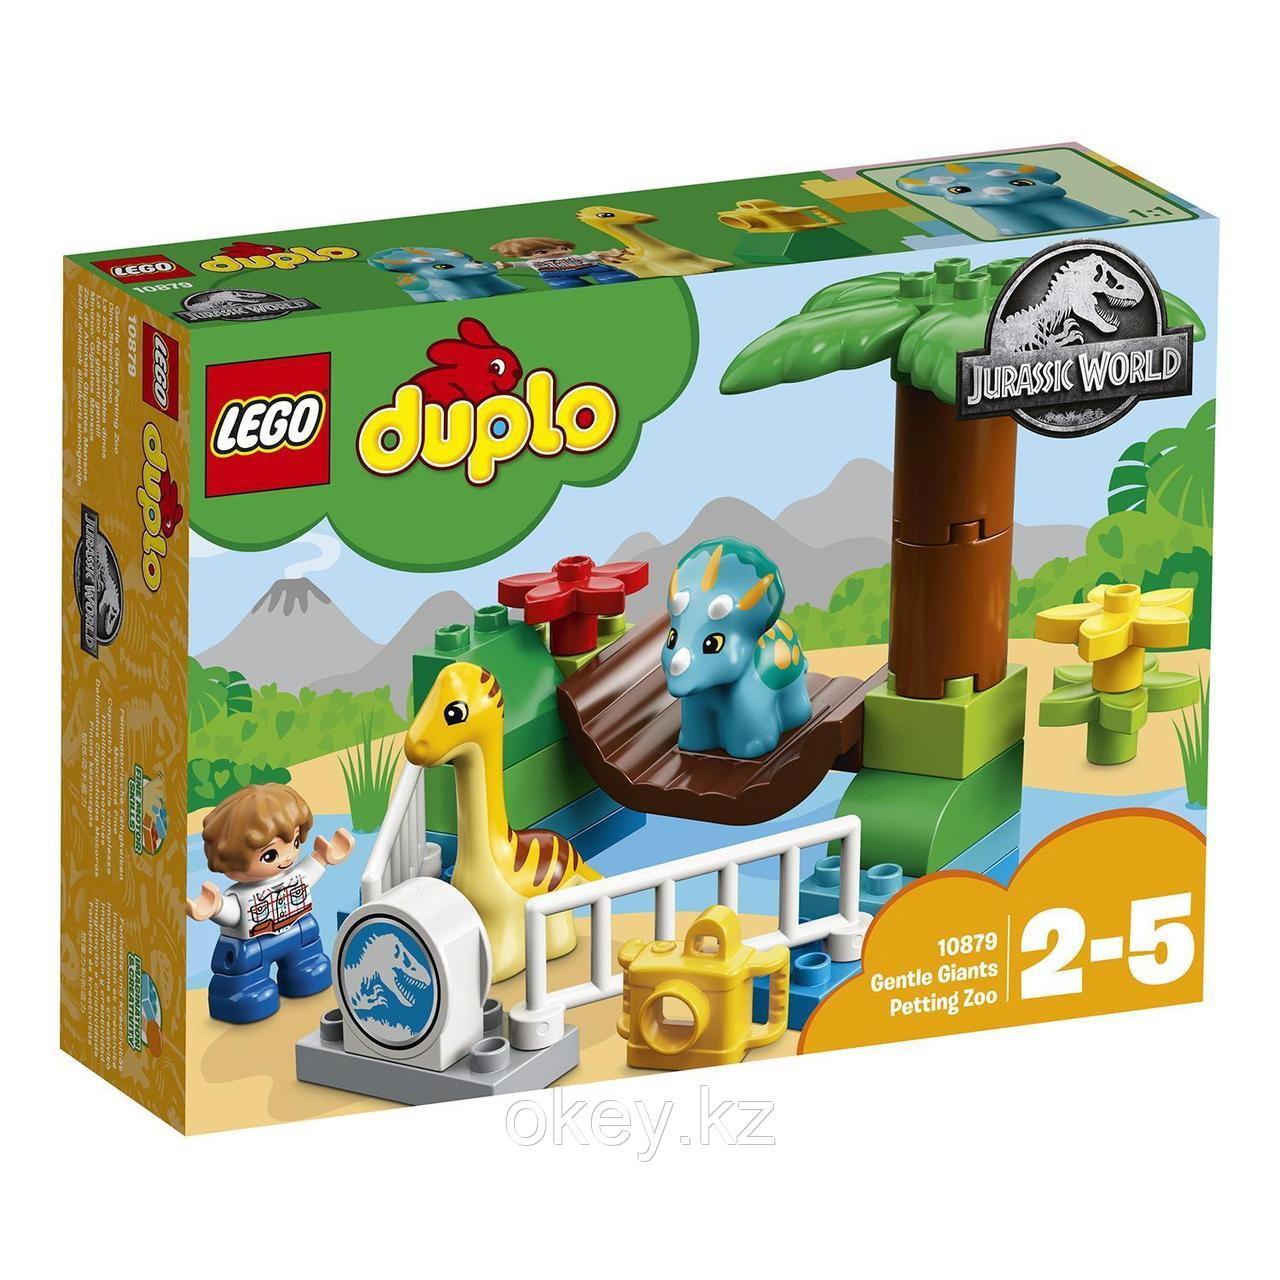 LEGO Duplo: Jurassic World — Парк динозавров 10879